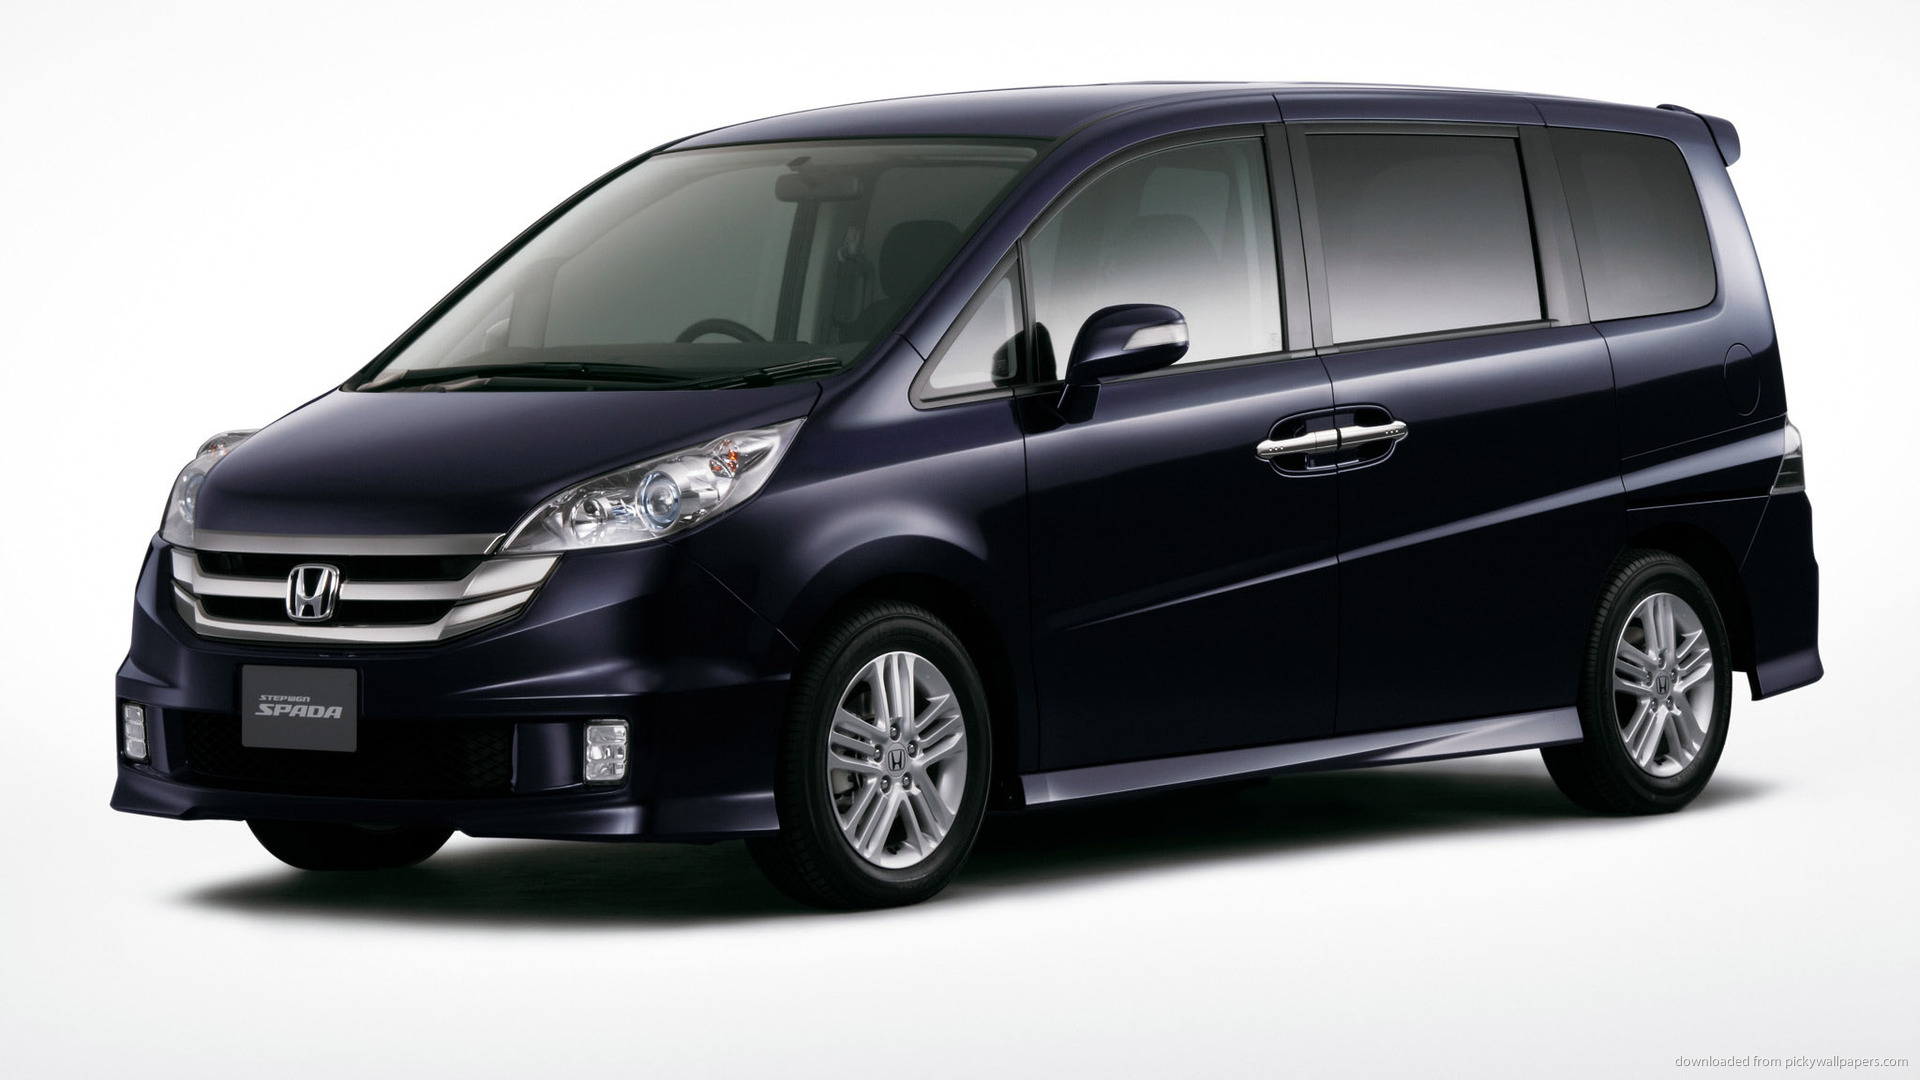 HONDA STEPWAGON black